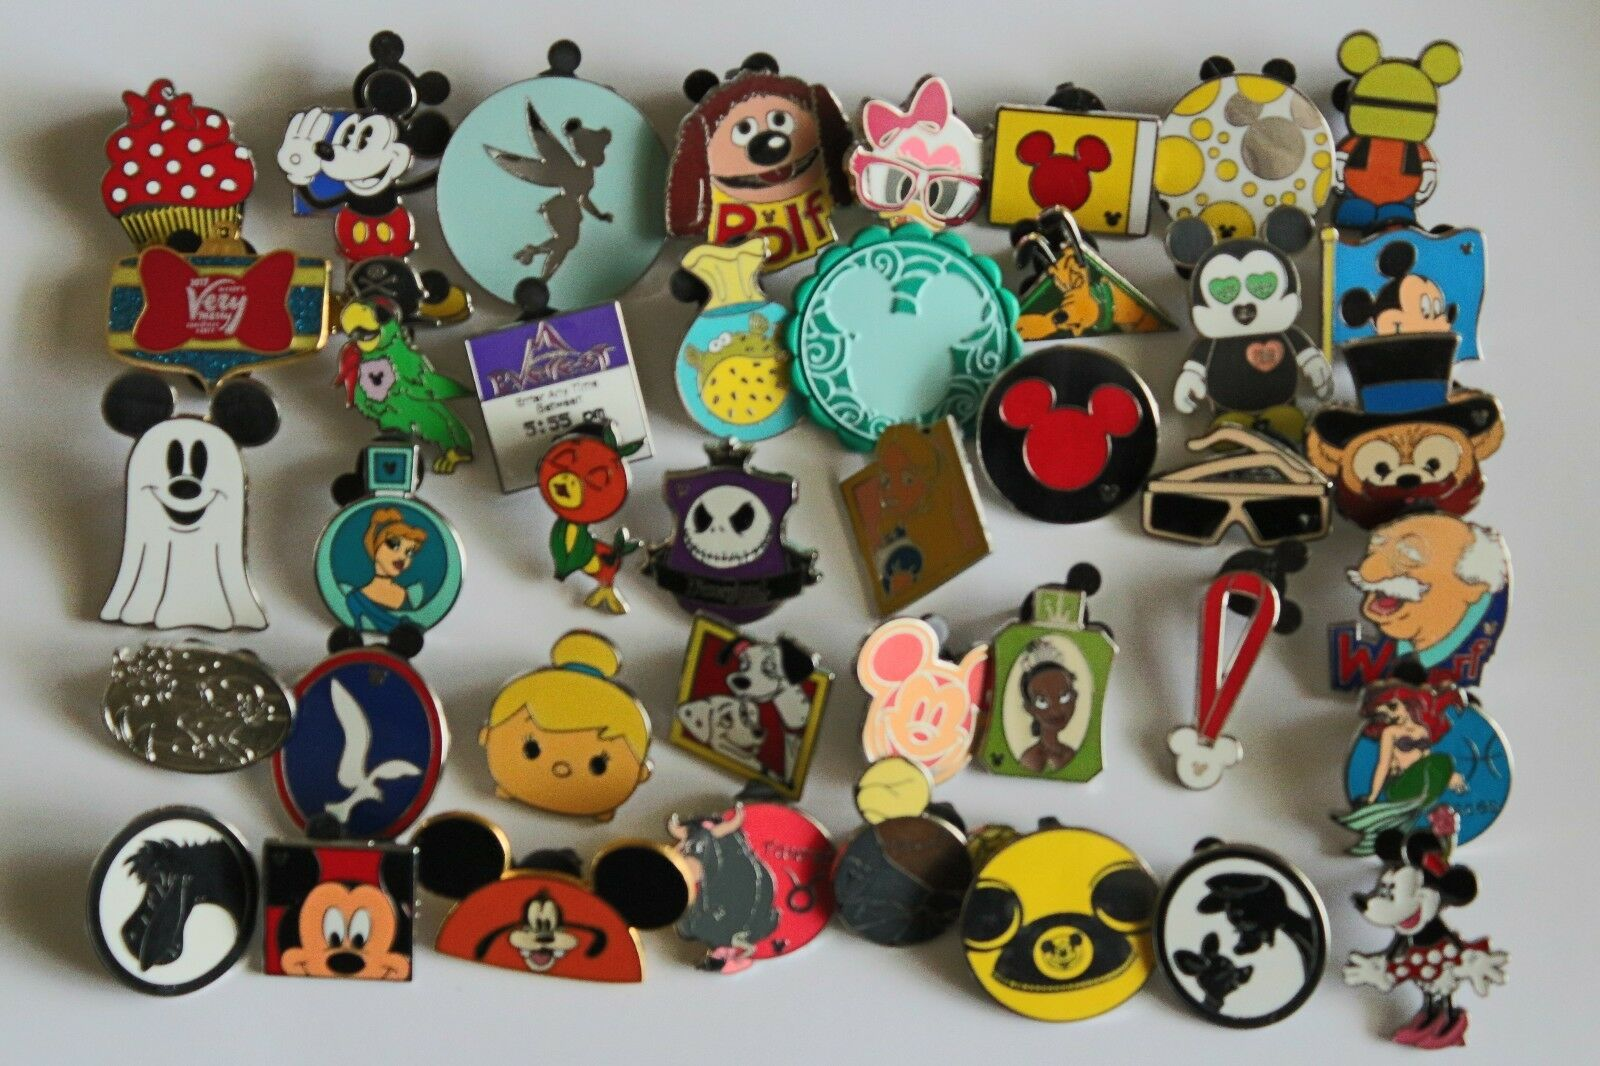 Disney-Pin-Trading-Lot-of-25-Assorted-Pins.-No-Doubles.-100%Tradable.